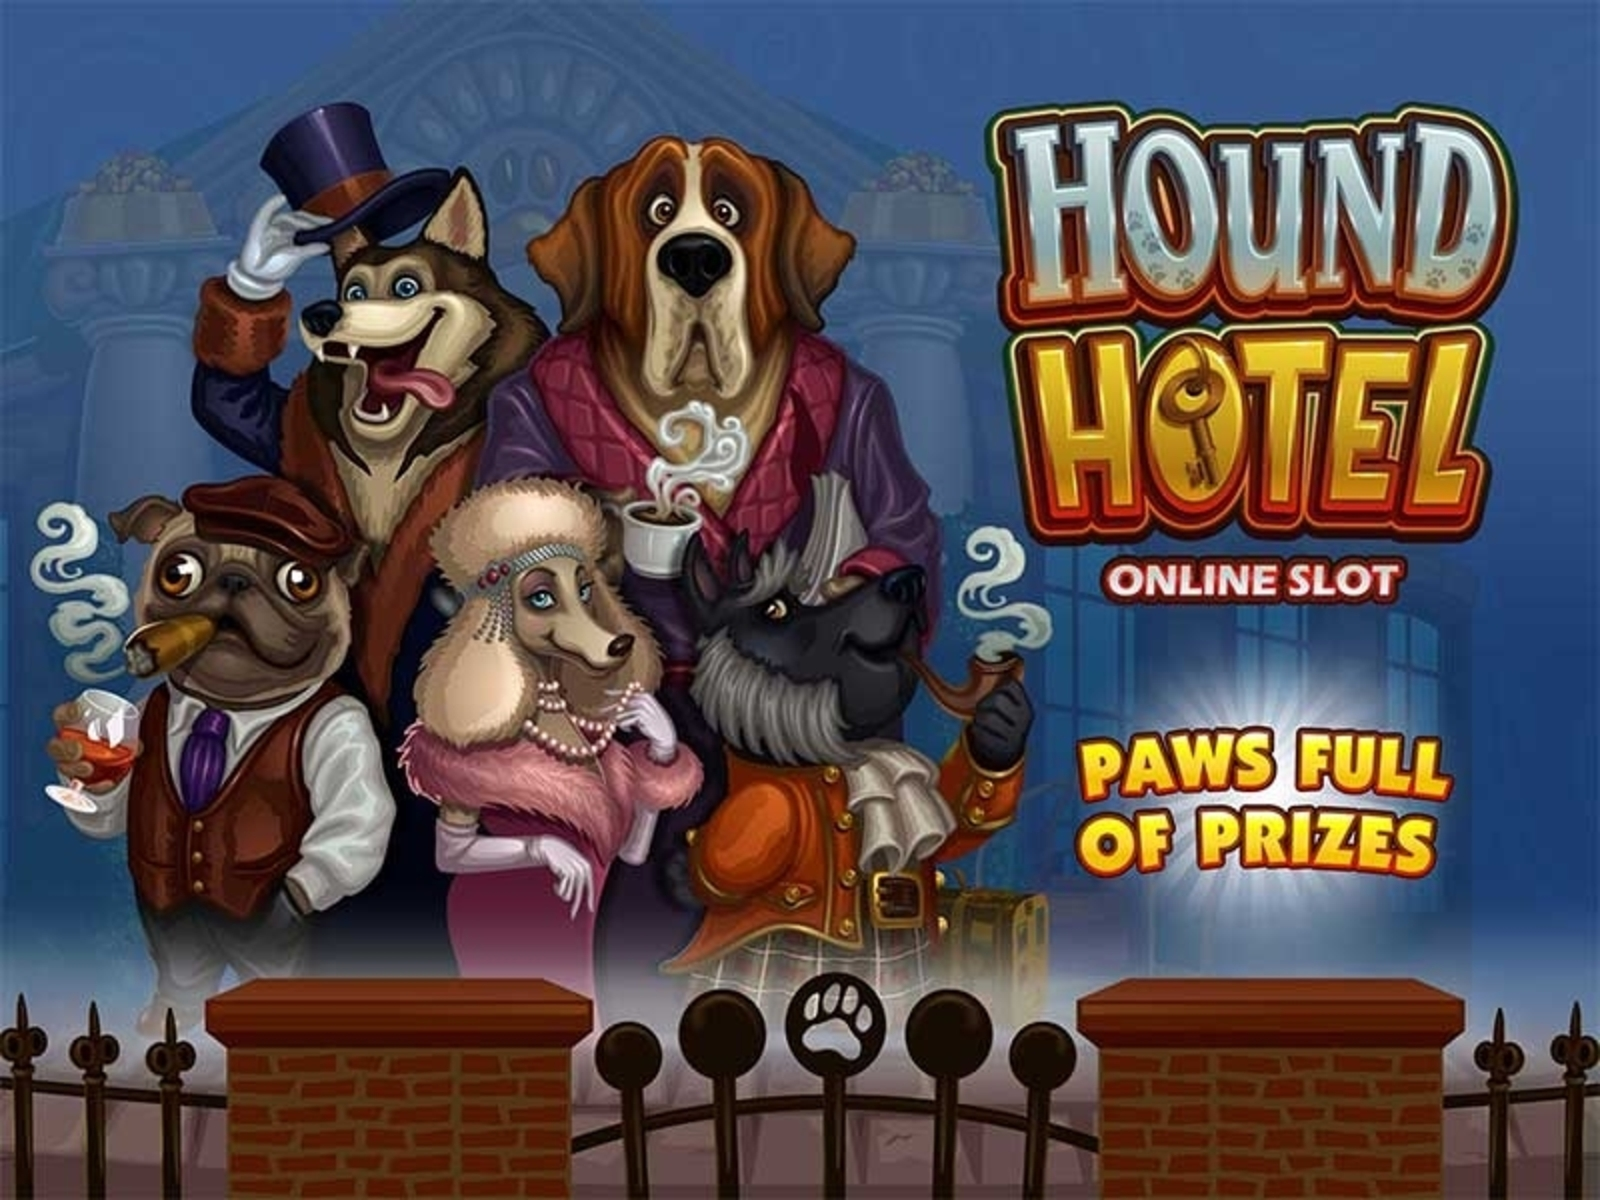 Hound Hotel Online Slot Demo Game by Microgaming